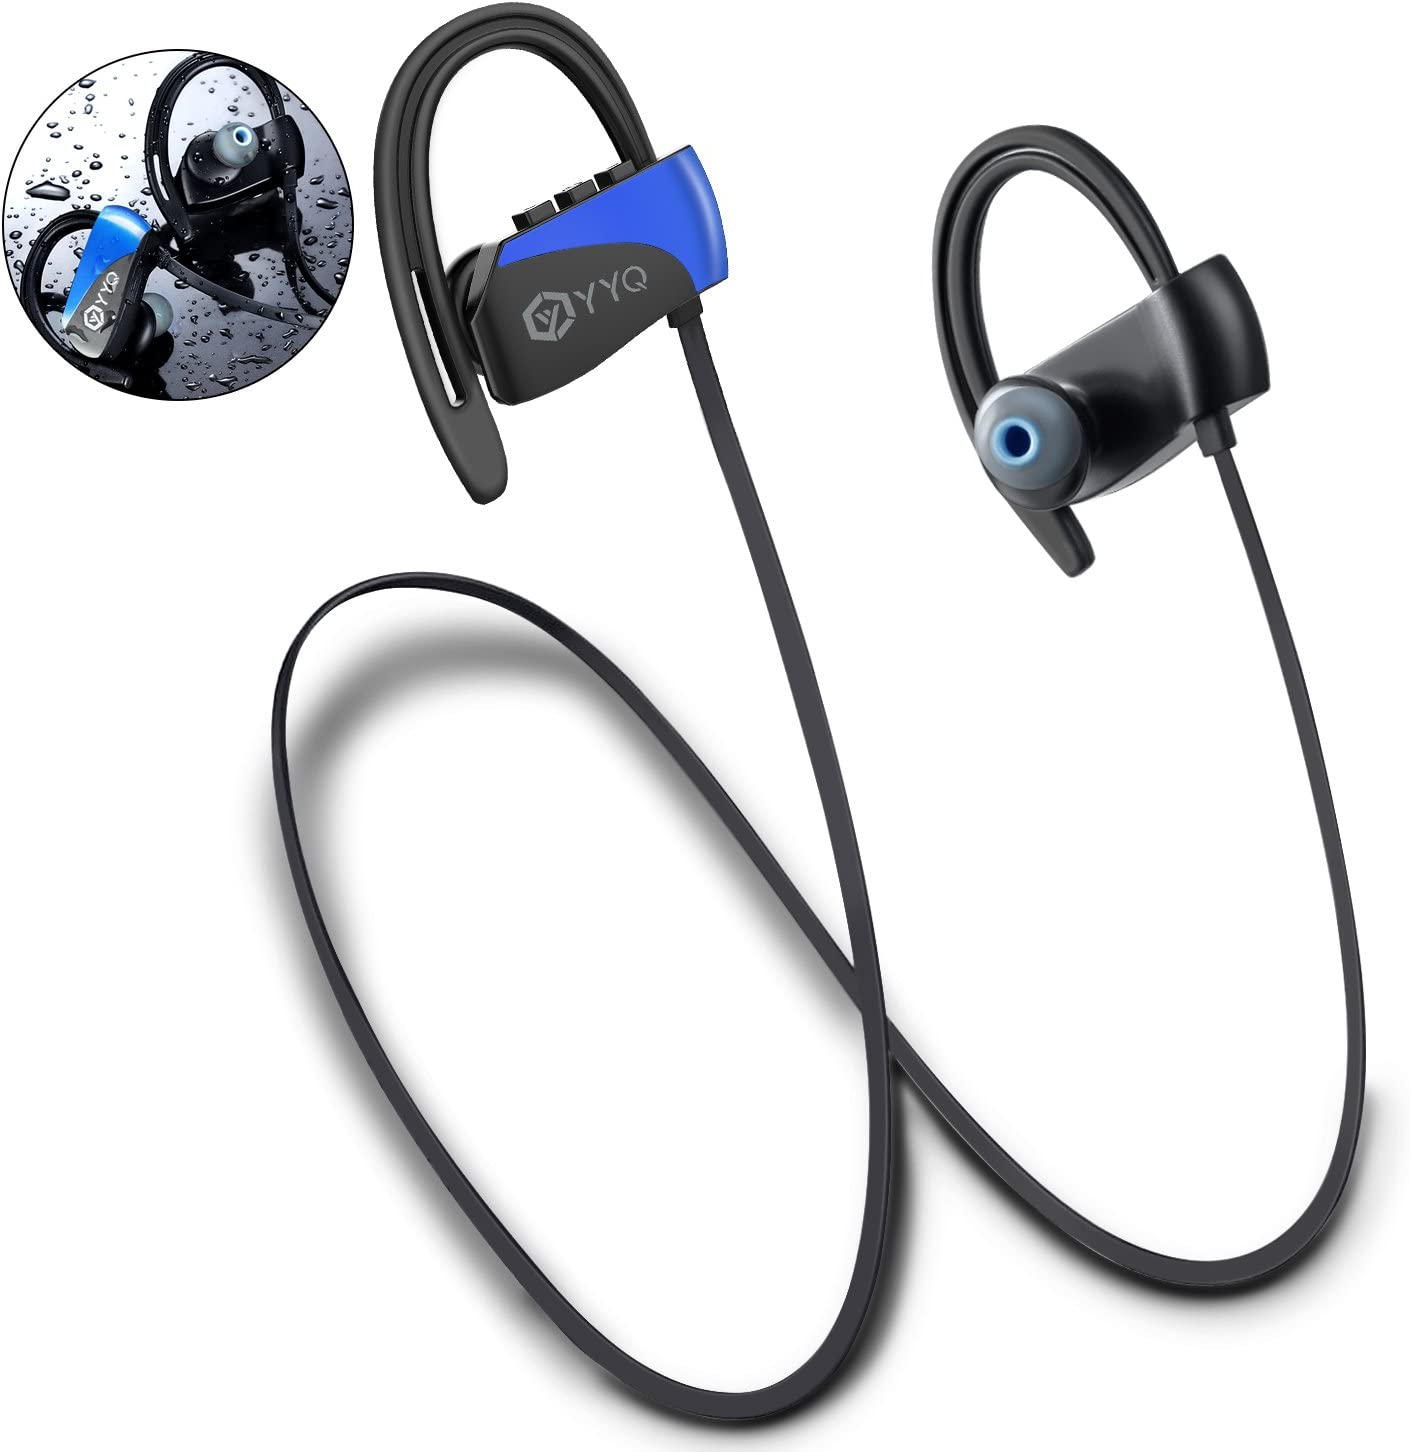 Bluetooth Headphones, M3 Wireless Sports Headset with Mic Waterproof Earphones HD Stereo Sweatproof Earbuds with Carring Case for Gym Running Workout 12 Hour Noise Cancelling (Blue)